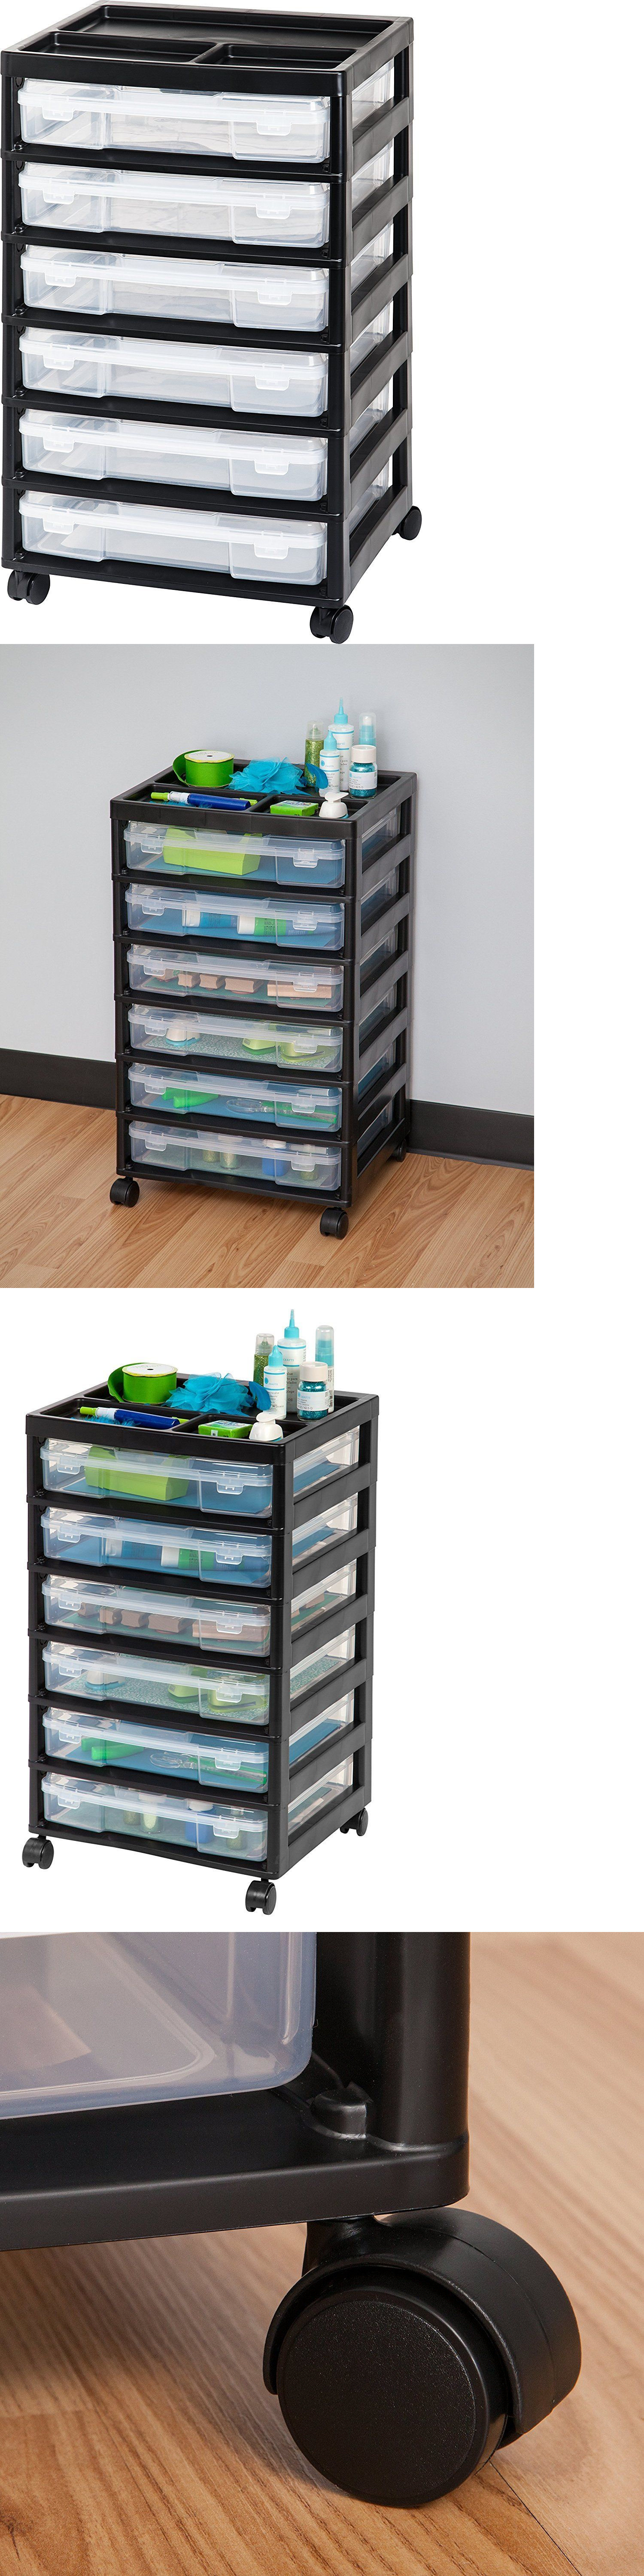 tall boxes store cube box drawer with plastic tier drawers tubs unit bins baskets transparent coloured lid lids stackable storage large mini containers small bin single